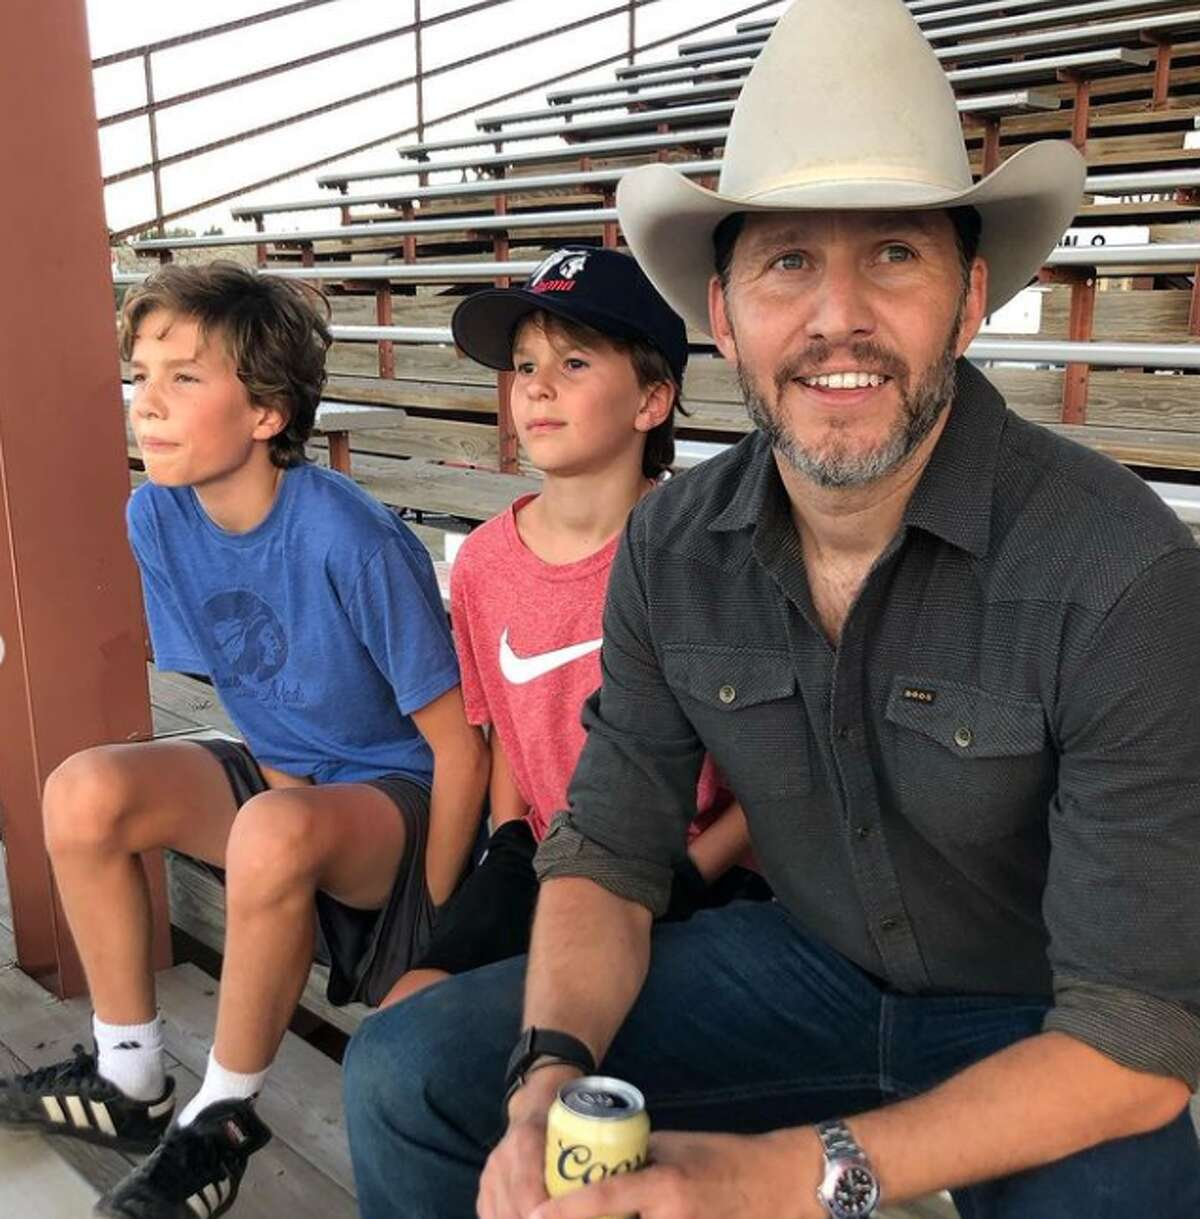 Fox News co-host Will Cain and his two sons.